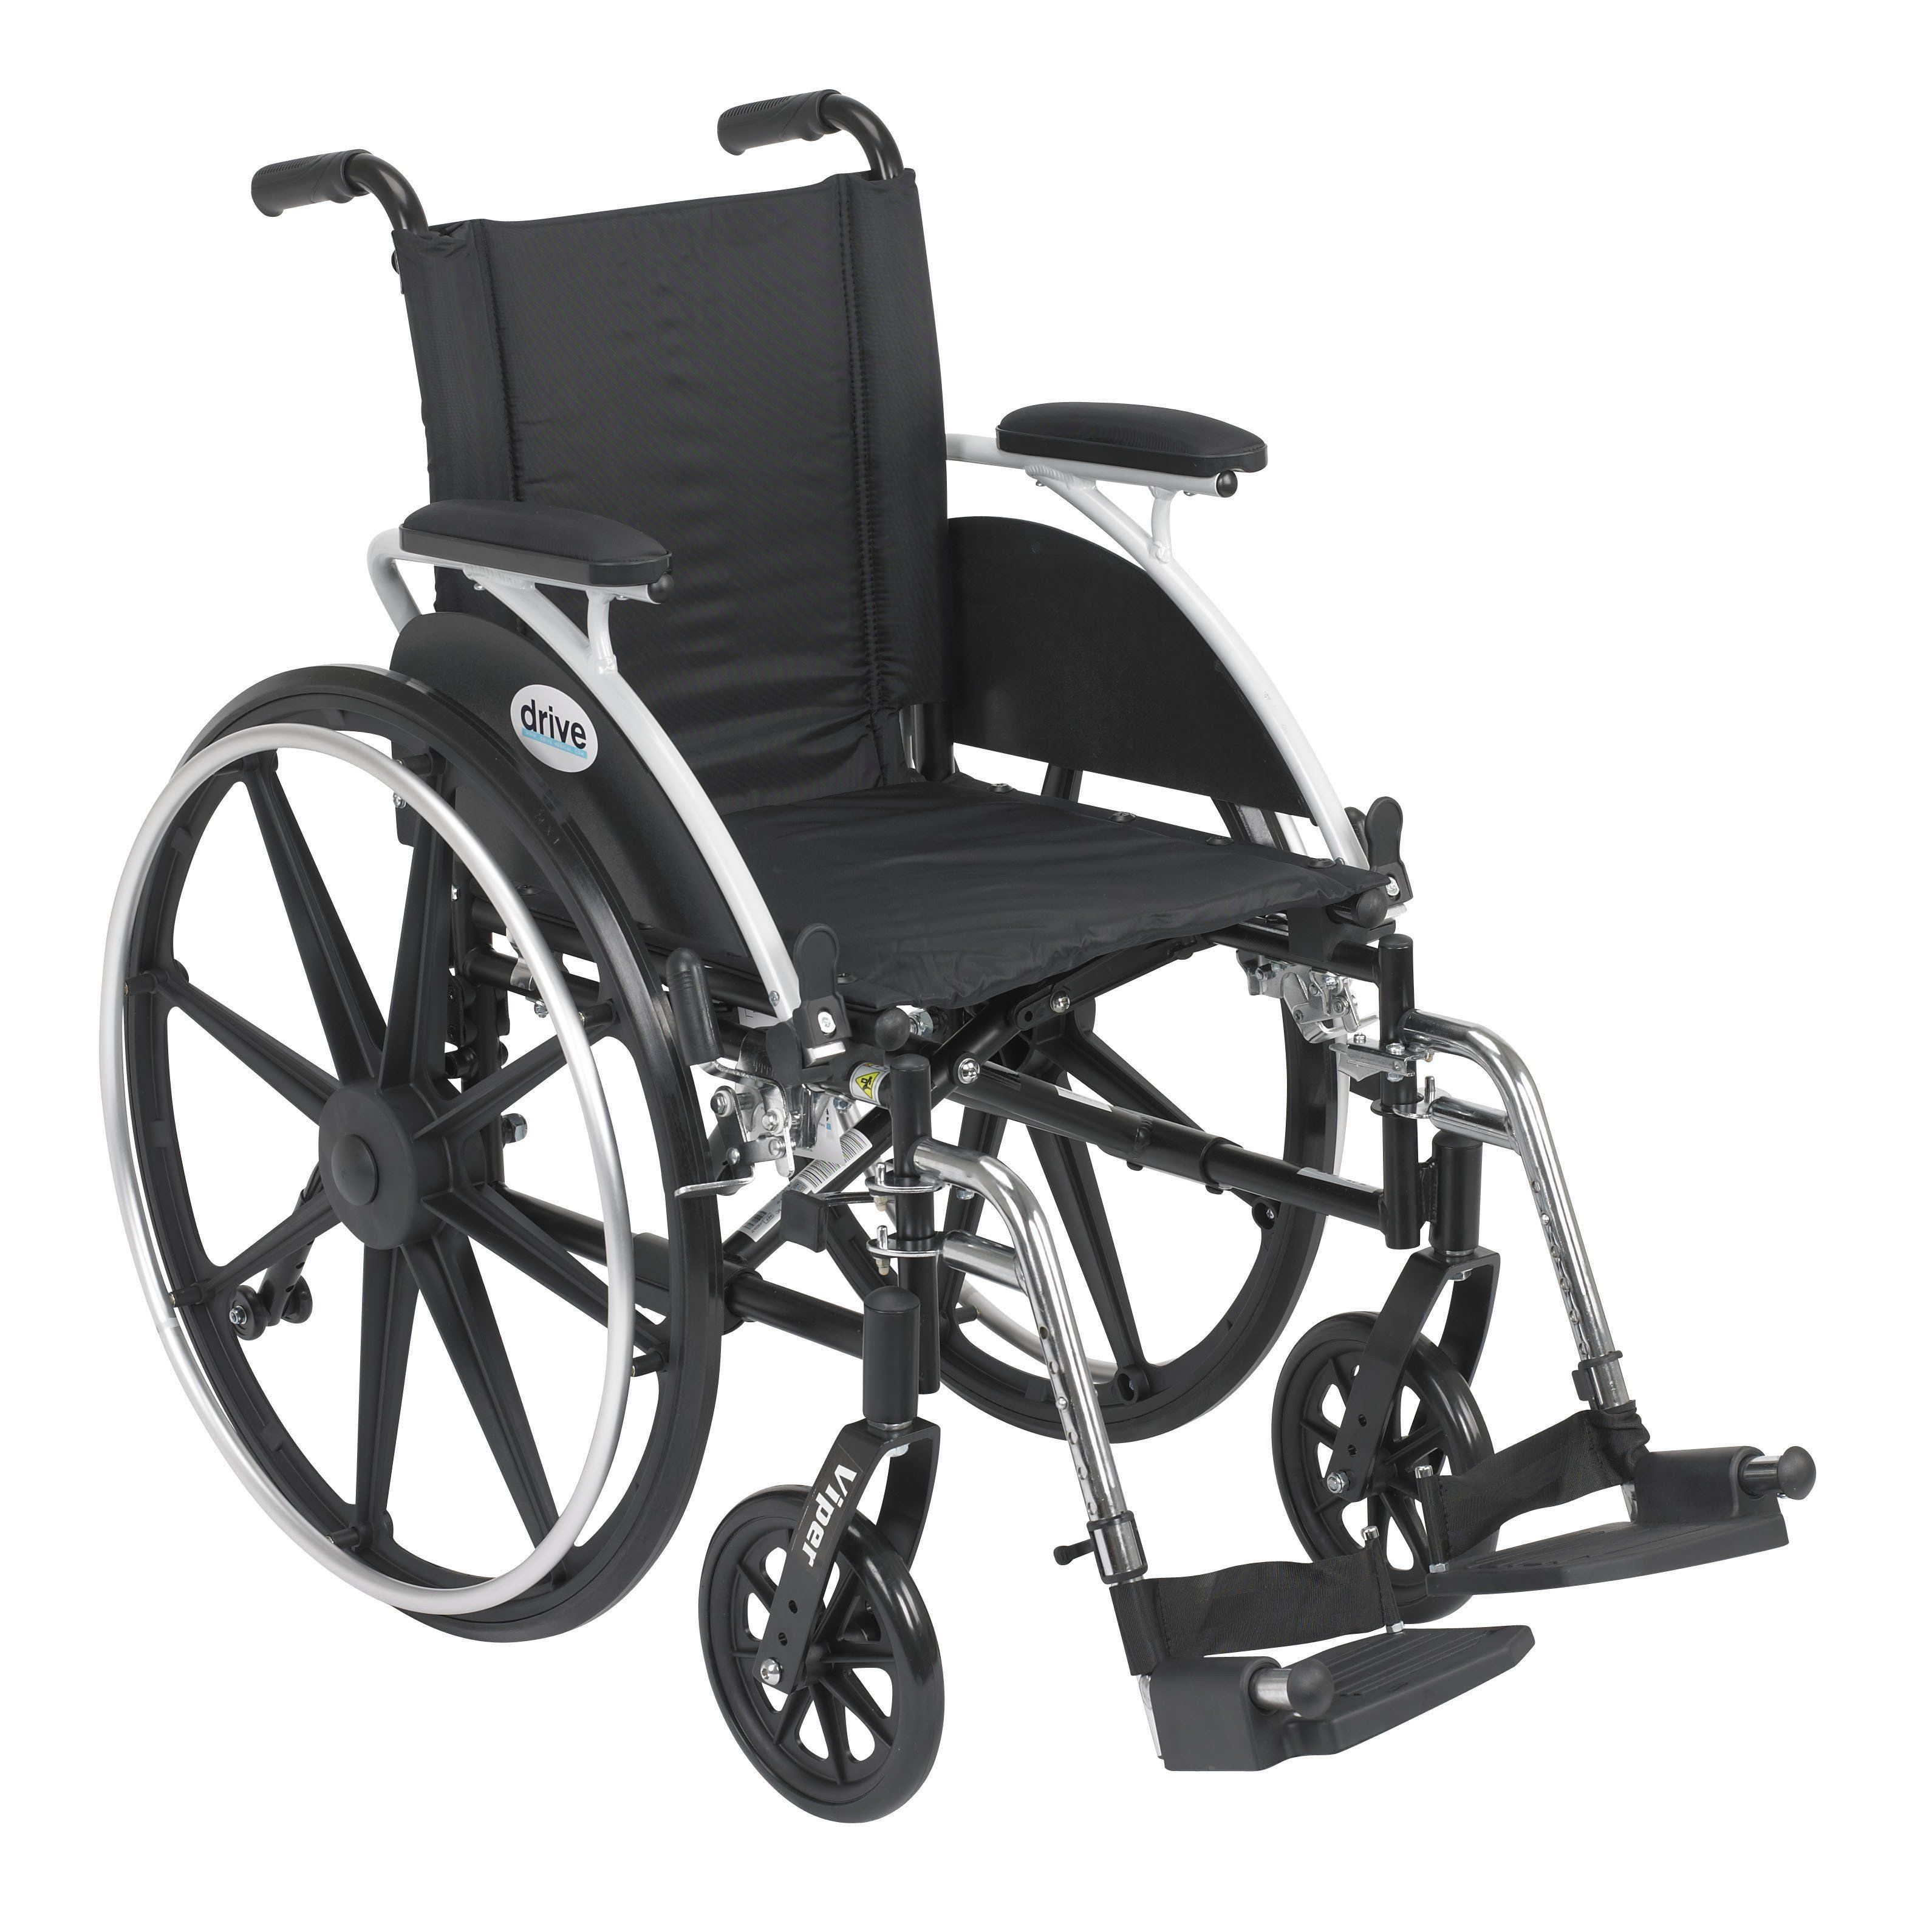 Drive l412dda-sf Viper Wheelchair with Flip Back Removable Arms, Desk Arms, Swing away. The Drive Medical Viper is a versatile wheelchair right out of the box and it is easier to propel and transport than an average weight wheelchair. The Viper comes standard with adjustable padded arms, multiple seat to floor height positions, anti-tippers with flip-up wheels which never have to be removed and push to lock wheel locks. The back is height adjustable to provide added patient comfort. The…